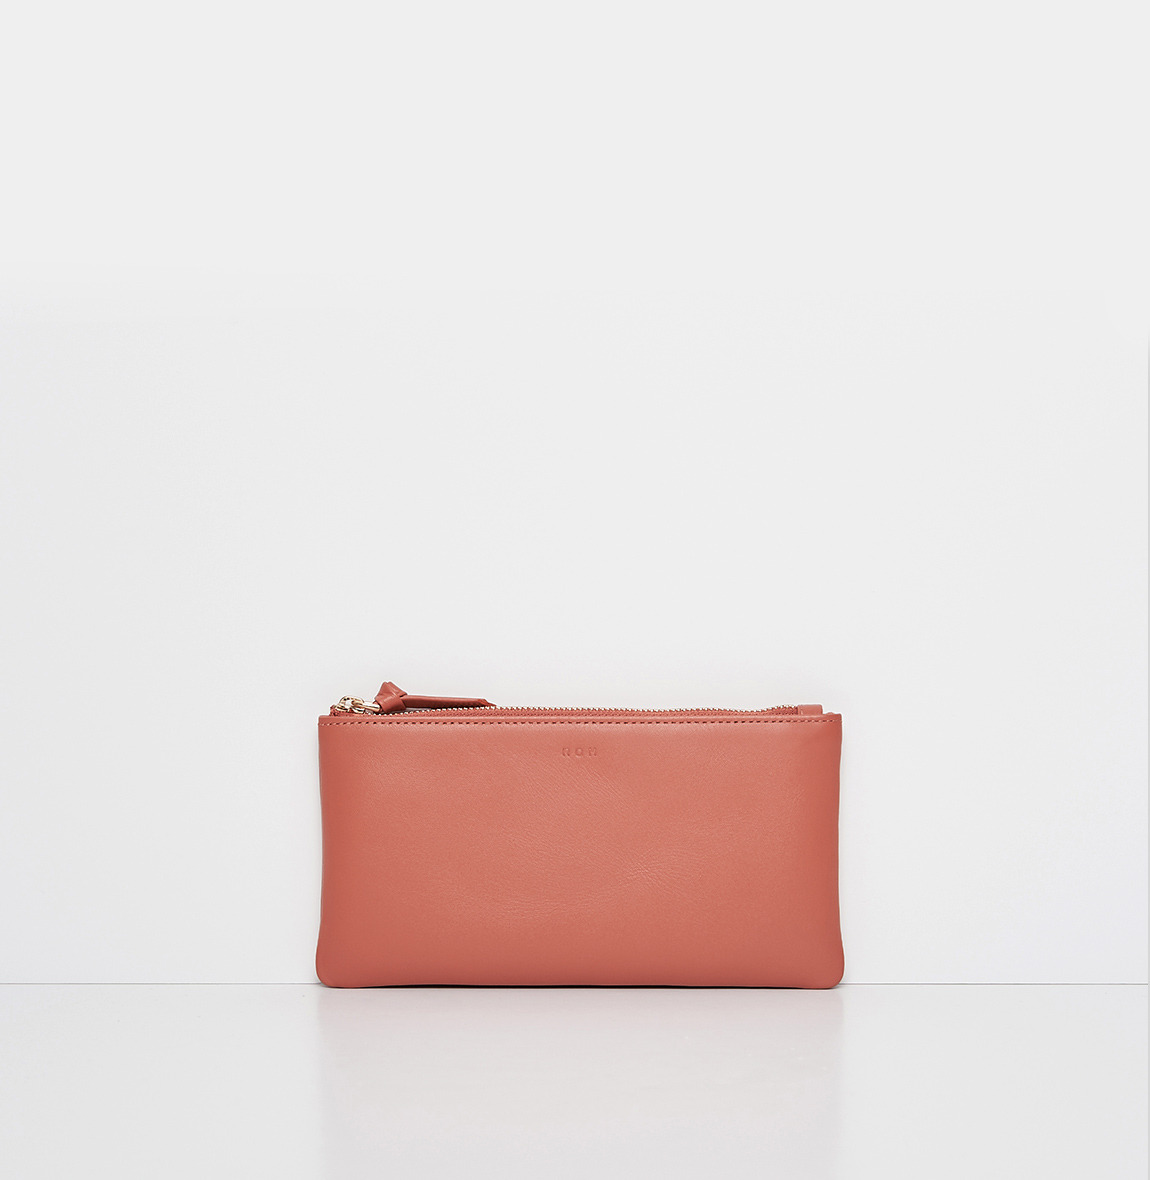 ROH Basic wallet objet 2 Amber coral